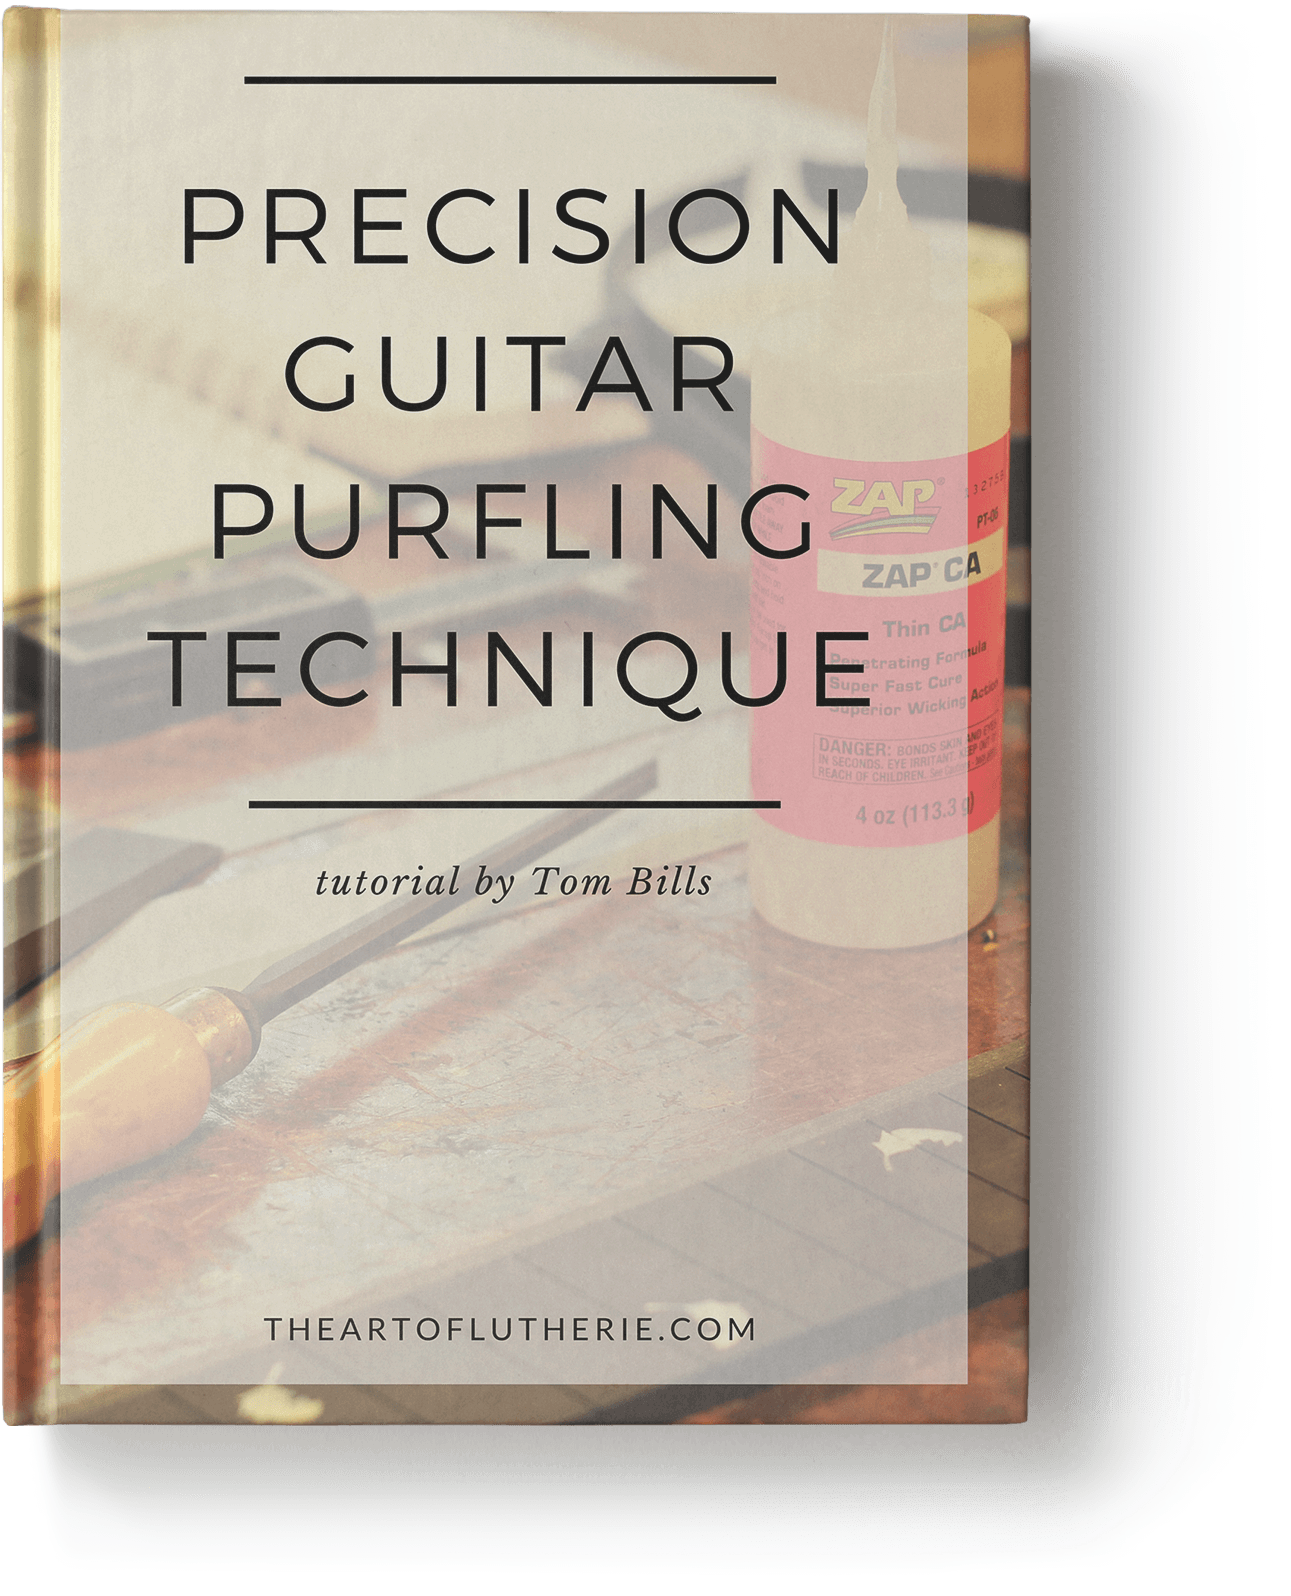 Guitar Perfling - Book Cover